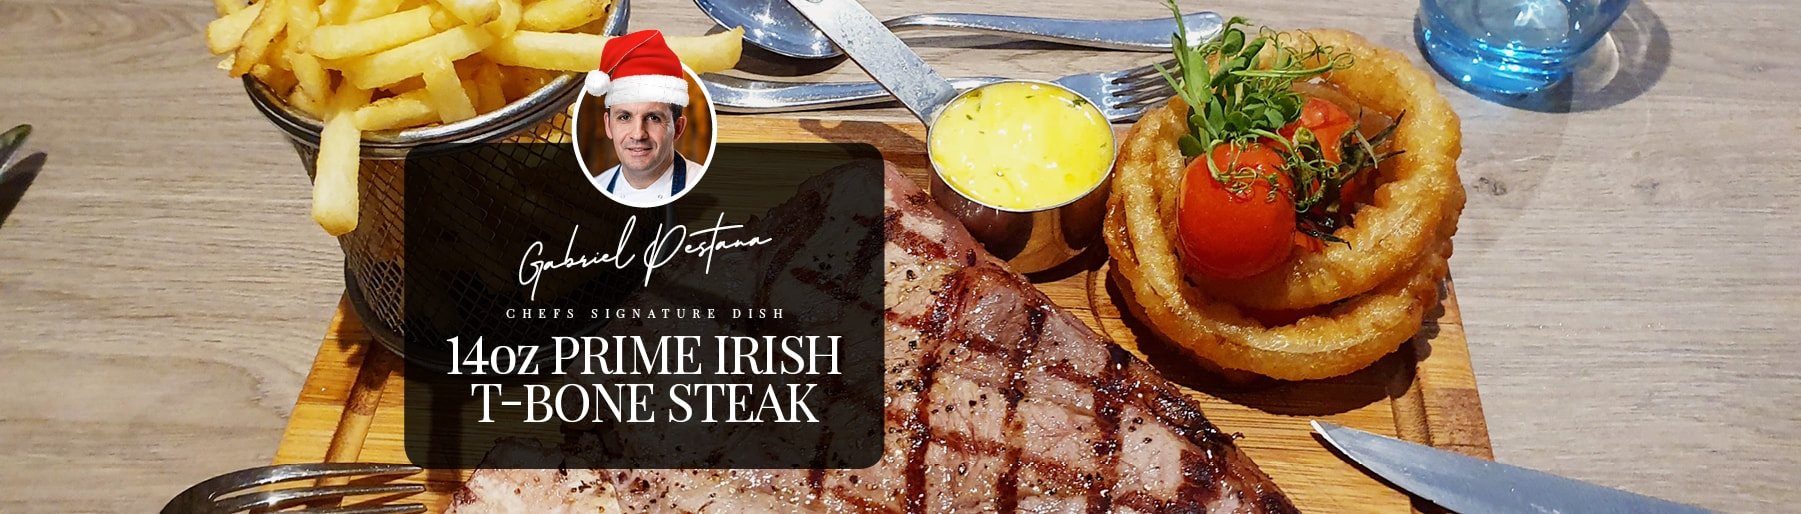 Chef Recommends T-Bone Steak